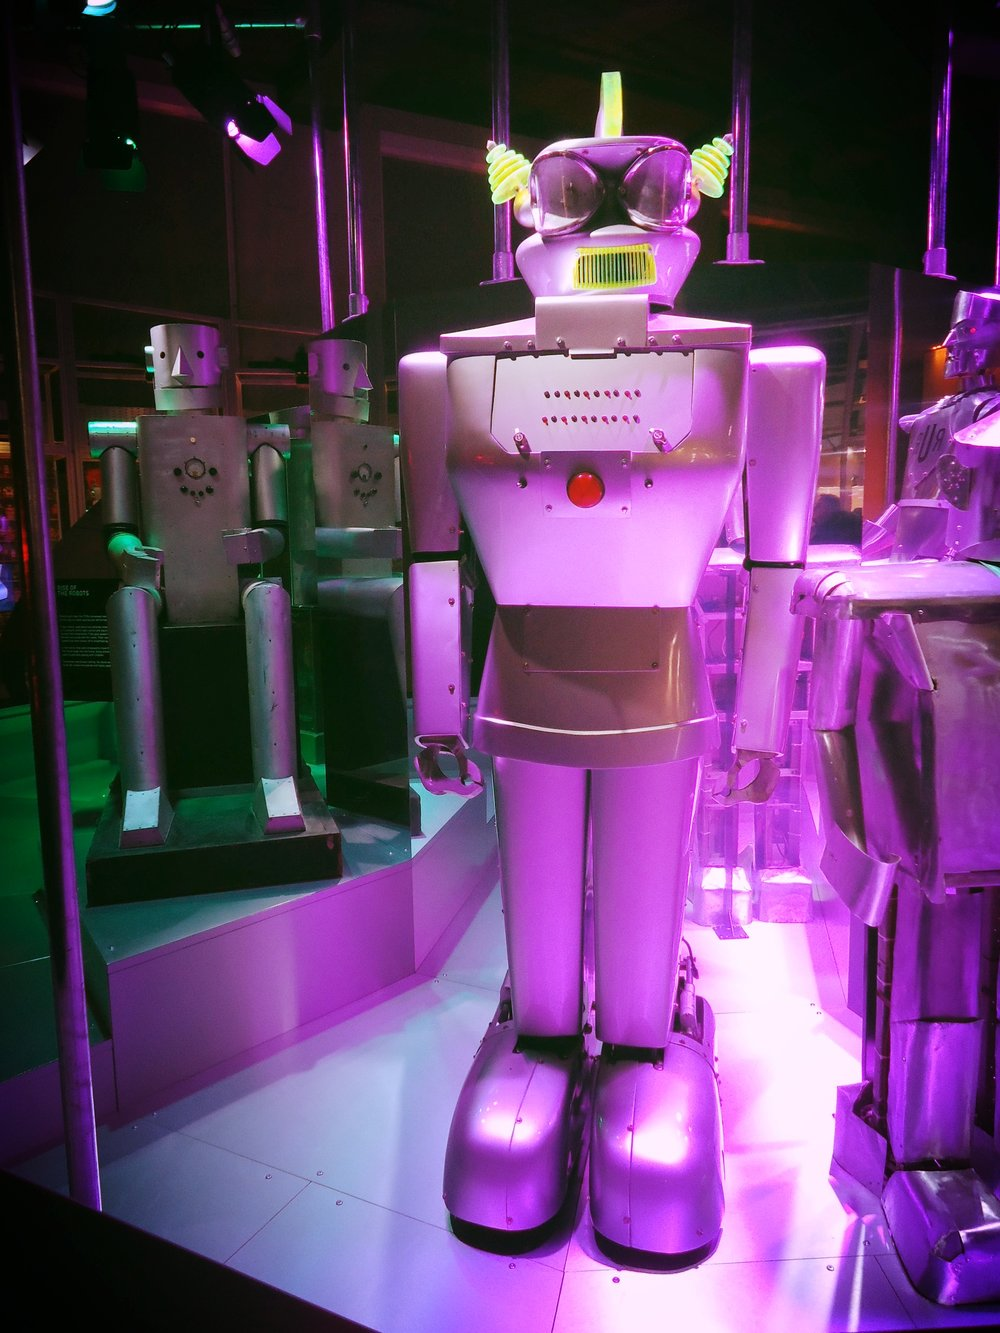 Robot Exhibition @ScienceMuseum